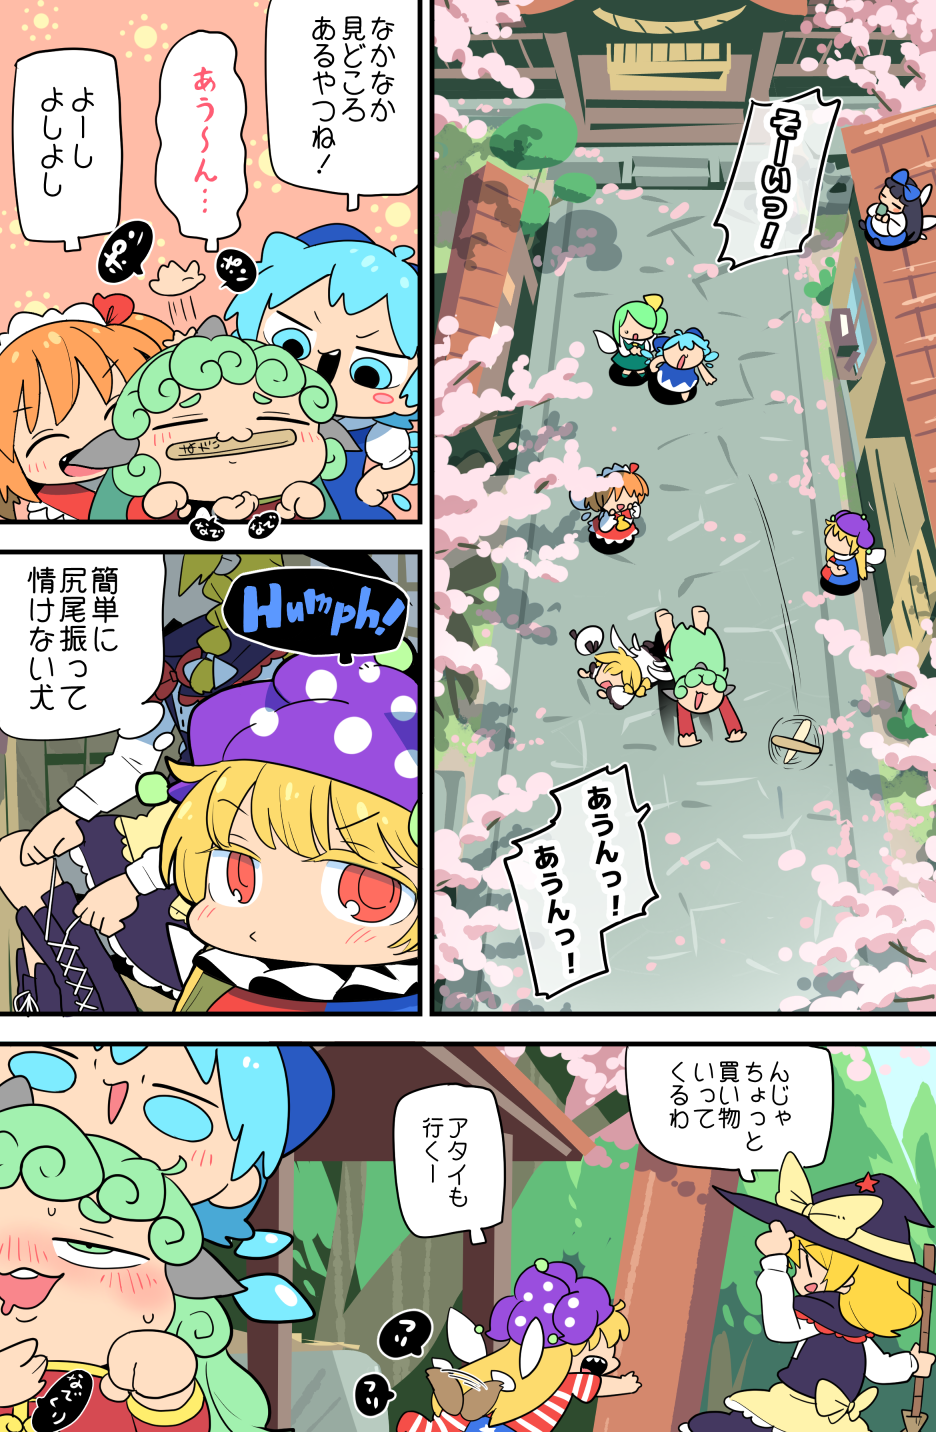 6+girls all_fours american_flag_shirt architecture black_hair blonde_hair blue_hair blue_vest boots bow chibi cirno clownpiece comic daiyousei east_asian_architecture fairy_wings green_hair hair_bow hat hat_loss highres jester_cap kirisame_marisa knee_boots komano_aun legs_crossed long_hair long_sleeves luna_child mouth_hold moyazou_(kitaguni_moyashi_seizoujo) multiple_girls on_roof petting puffy_short_sleeves puffy_sleeves red_eyes redhead shirt short_hair short_sleeves shrine sitting standing star_sapphire stepped_on stick stone_wall sunny_milk tail_wagging throwing touhou translation_request tying very_long_hair vest wall white_shirt wings witch_hat